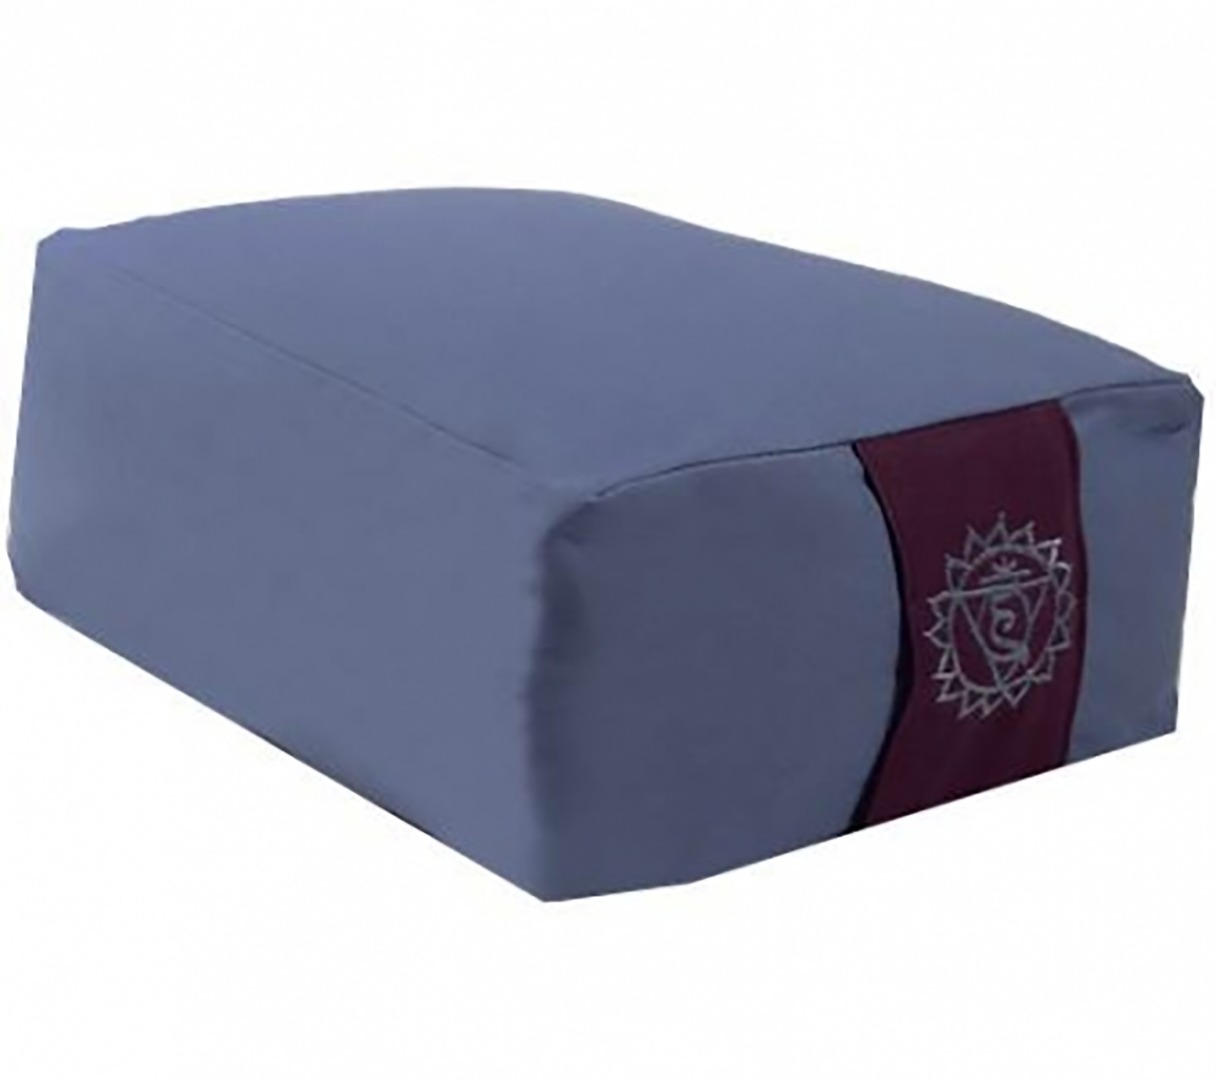 Blue Chakra  Rectangular Bolster Cushion. Size 38cm x 28cm x 15cm